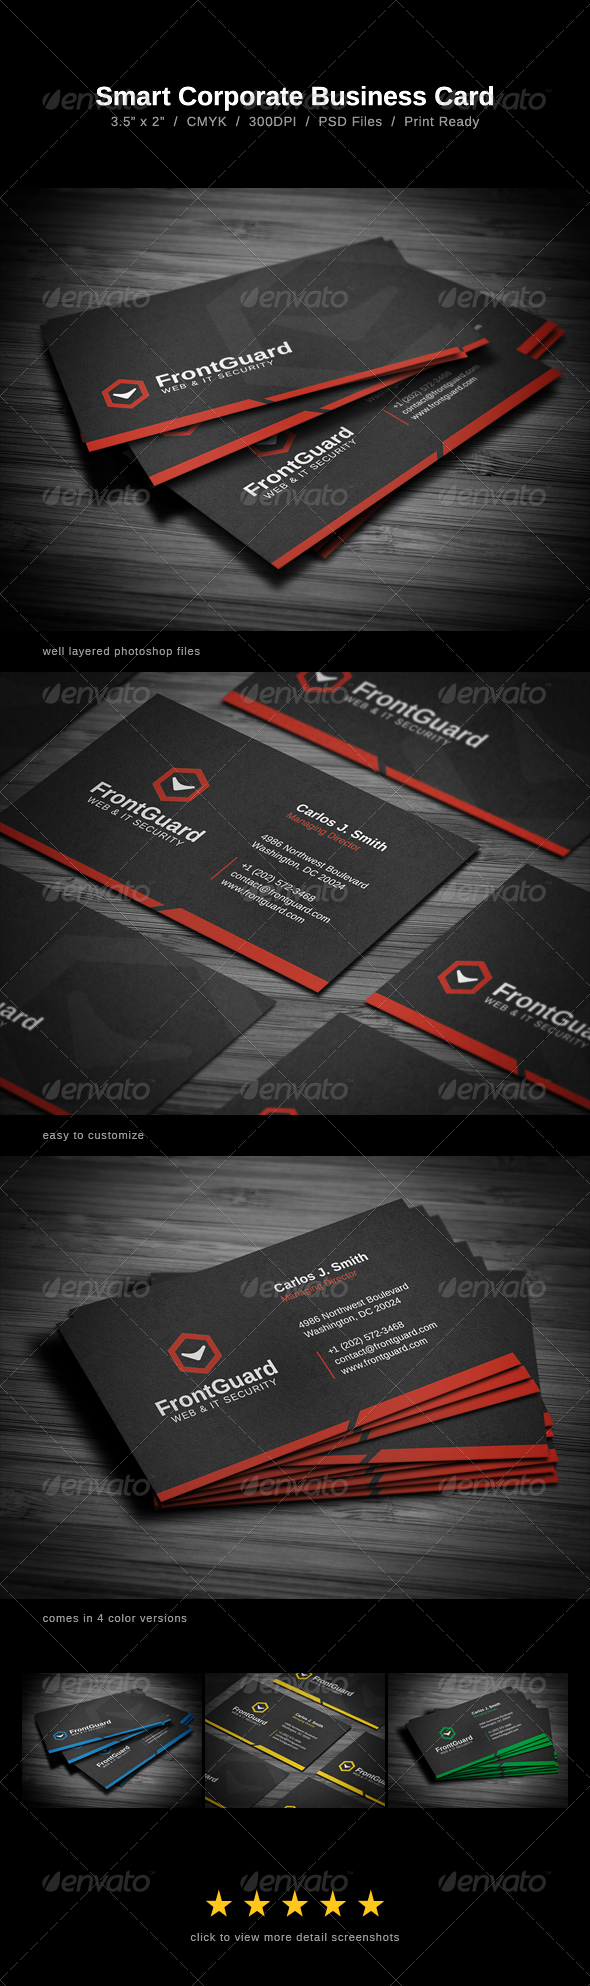 GraphicRiver Smart Corporate Business Card 5490165